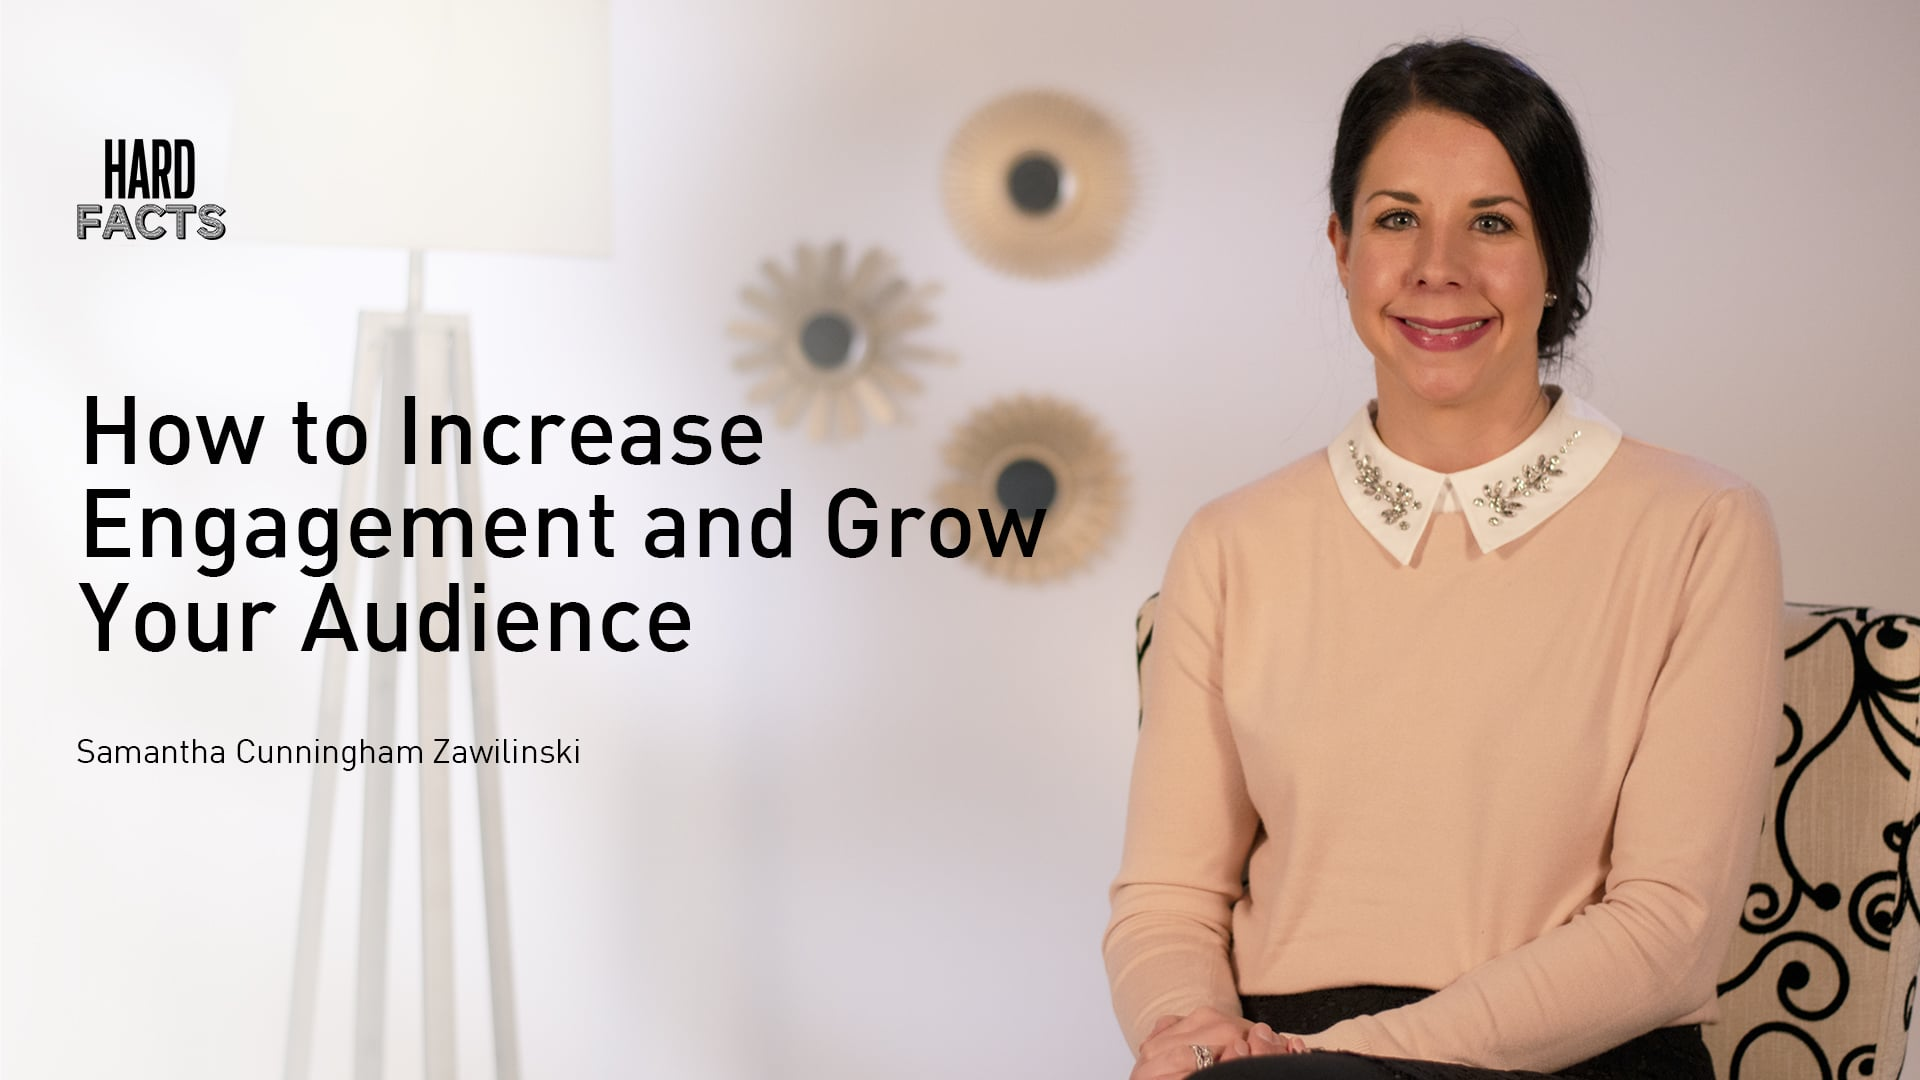 How to Increase Engagement and Grow Your Audience